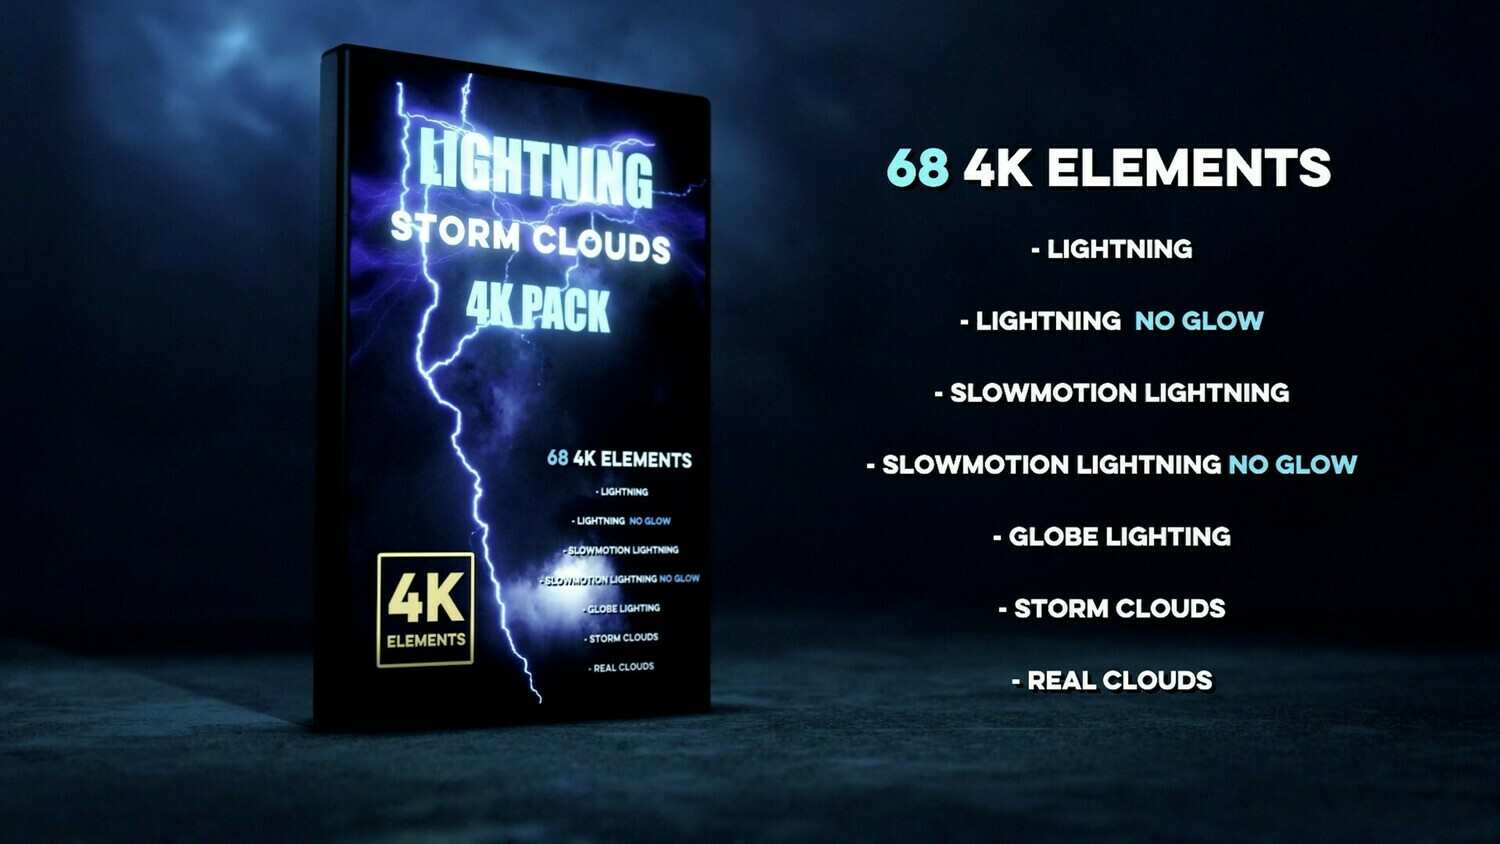 Lightning Storm Clouds 4K